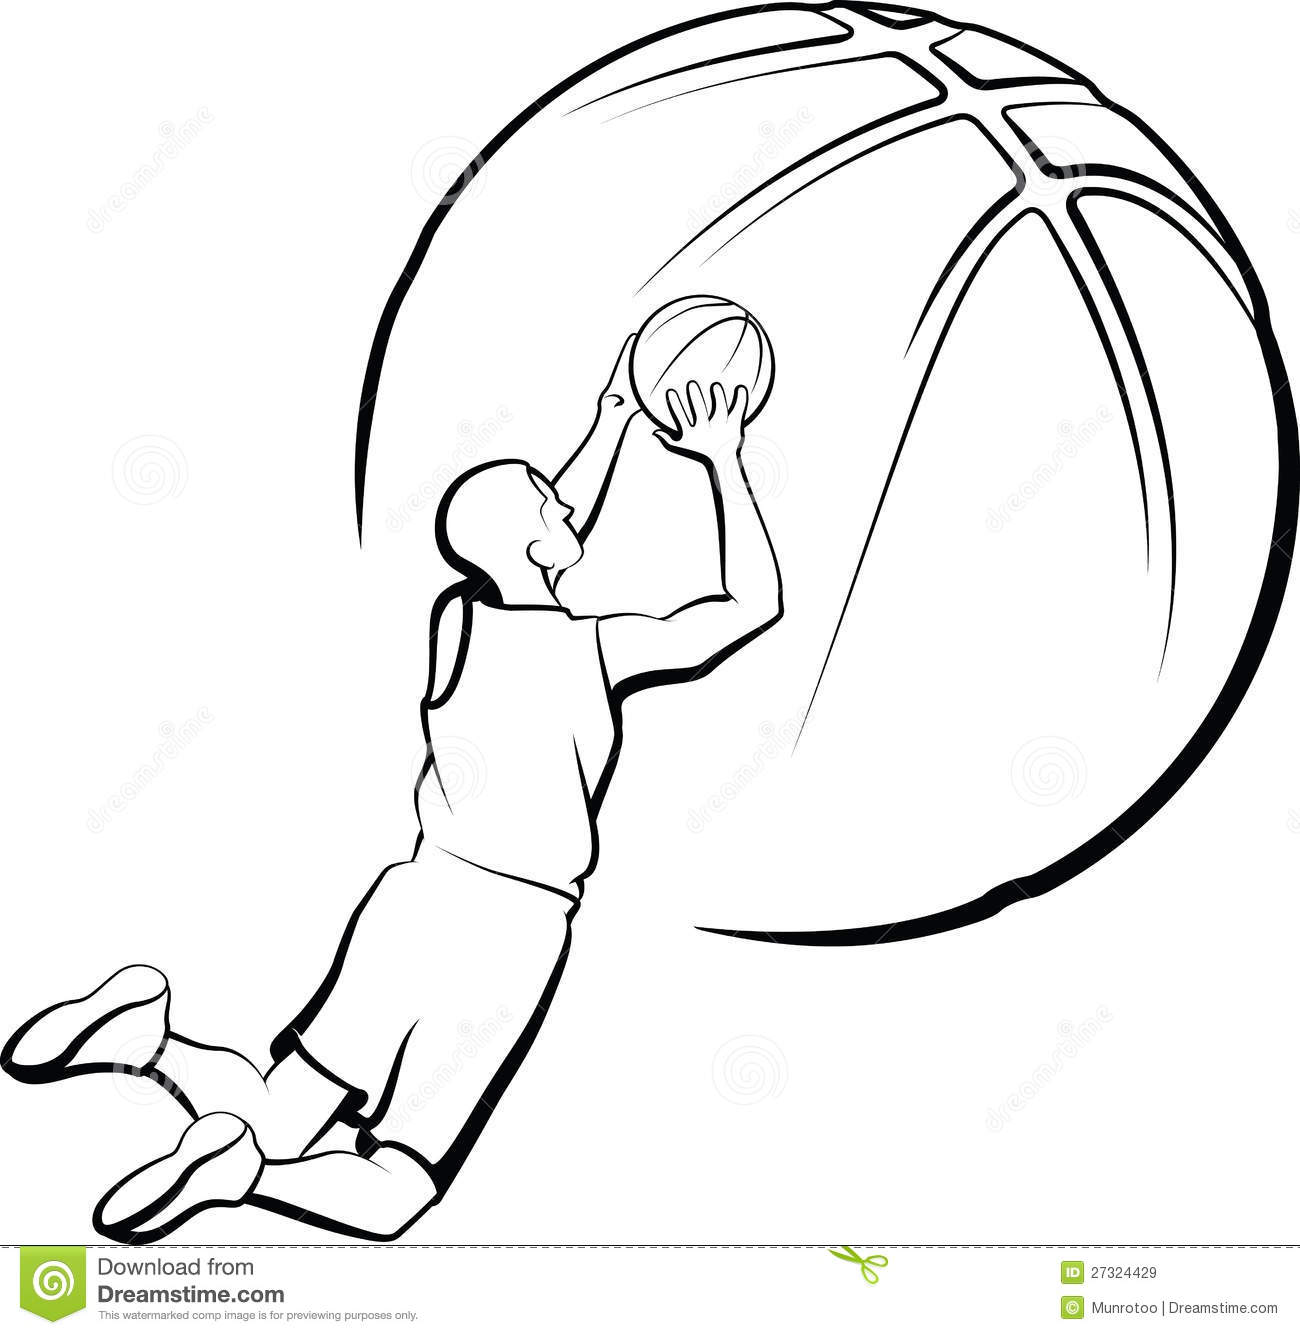 how to draw someone shooting a basketball clipart of a line art cartoon boy shooting a basketball how draw shooting to basketball a someone